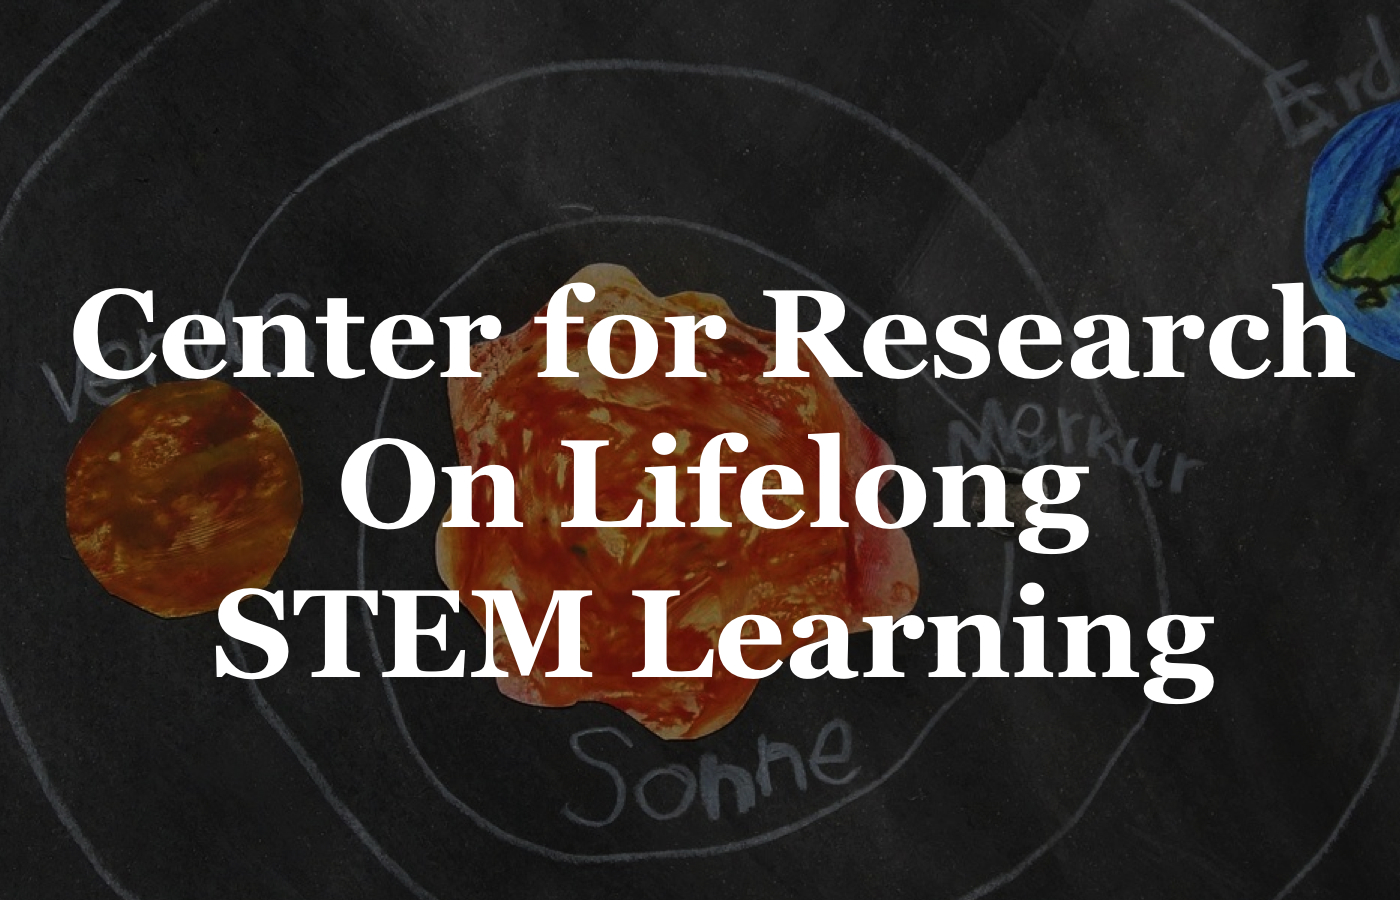 click here to link to the Center for Research on Lifelong STEM Learning website